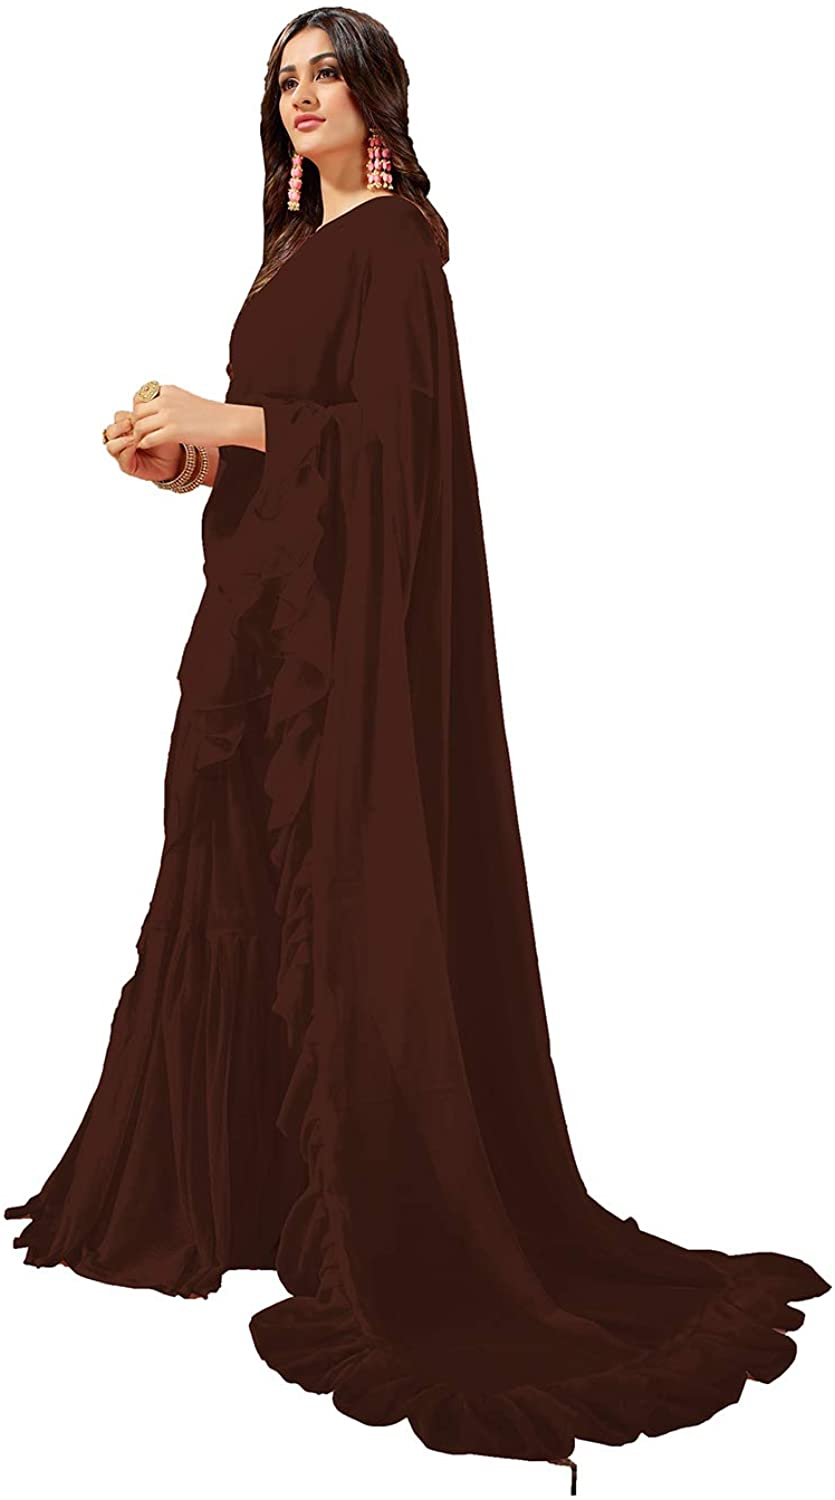 Saree for Women Bollywood Wedding Designer Brown Sari with Unstitched Blouse.